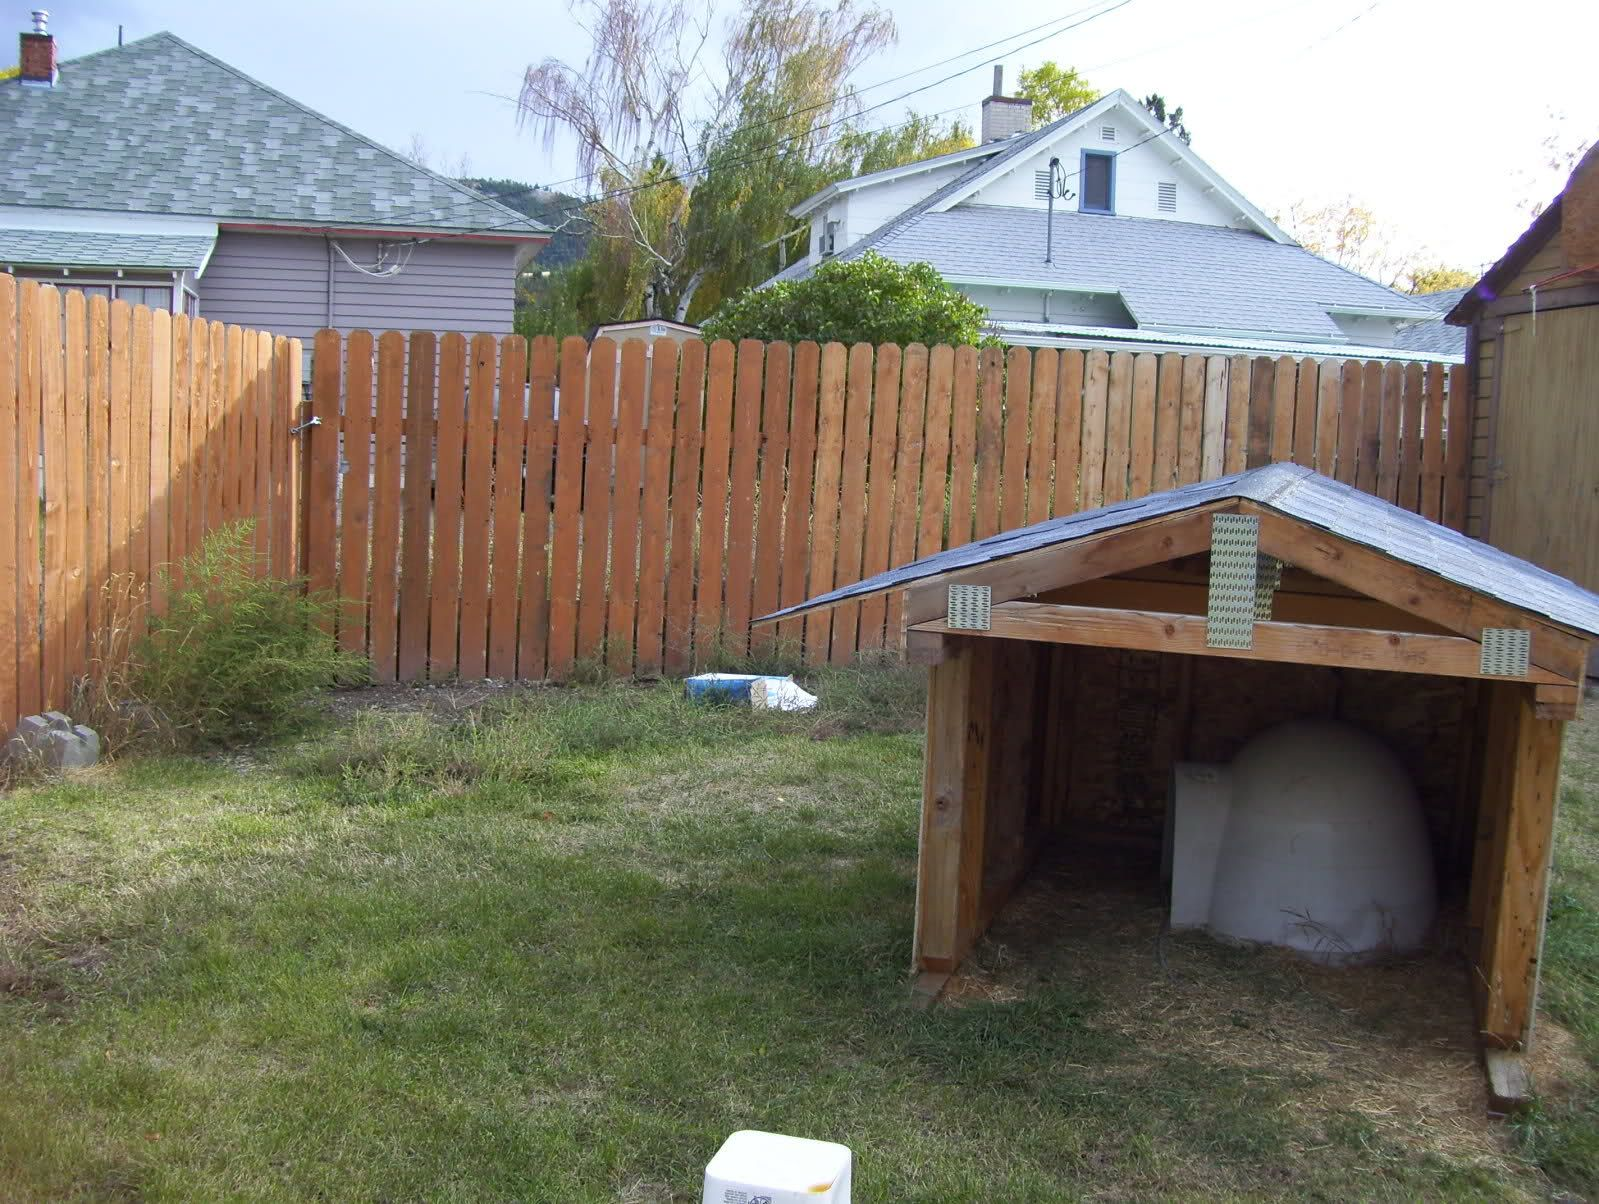 Shade For Dogs Outside How Big For Dog House Shade For Dogs